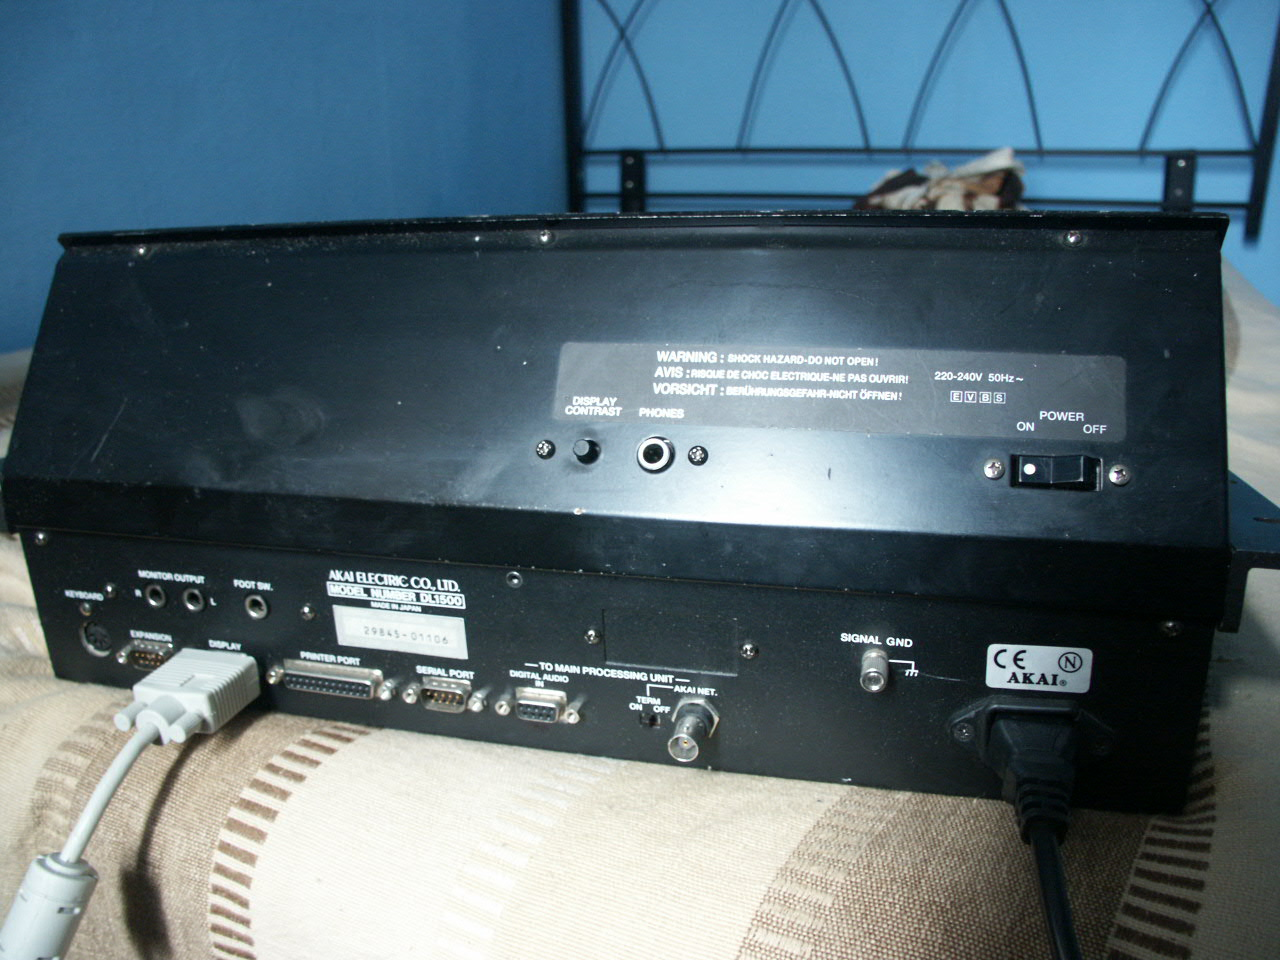 Akai DL1500 Rear view